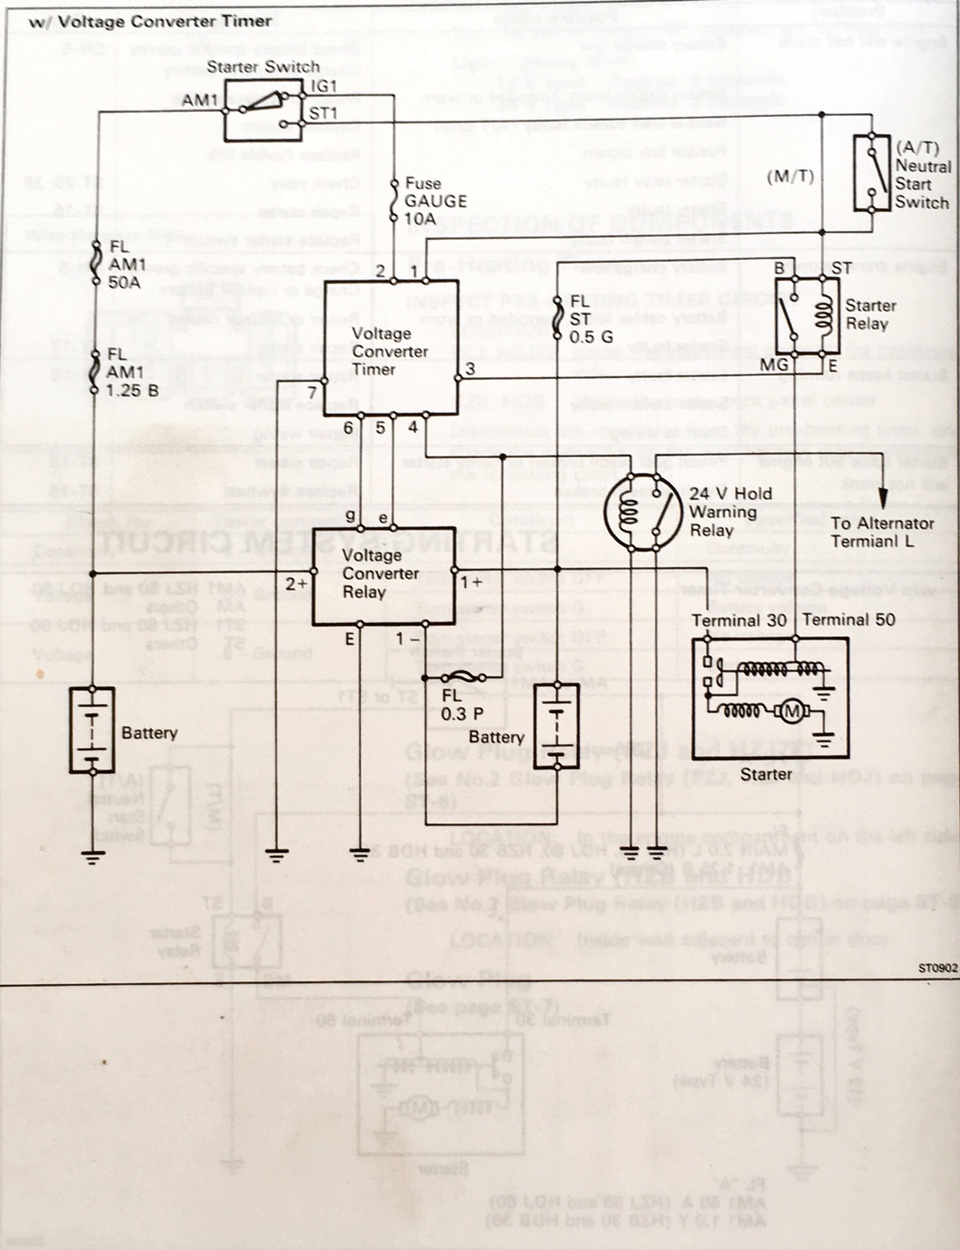 Starter Relay Wiring Diagram On 5 Wire Starter Relay Wiring Diagram